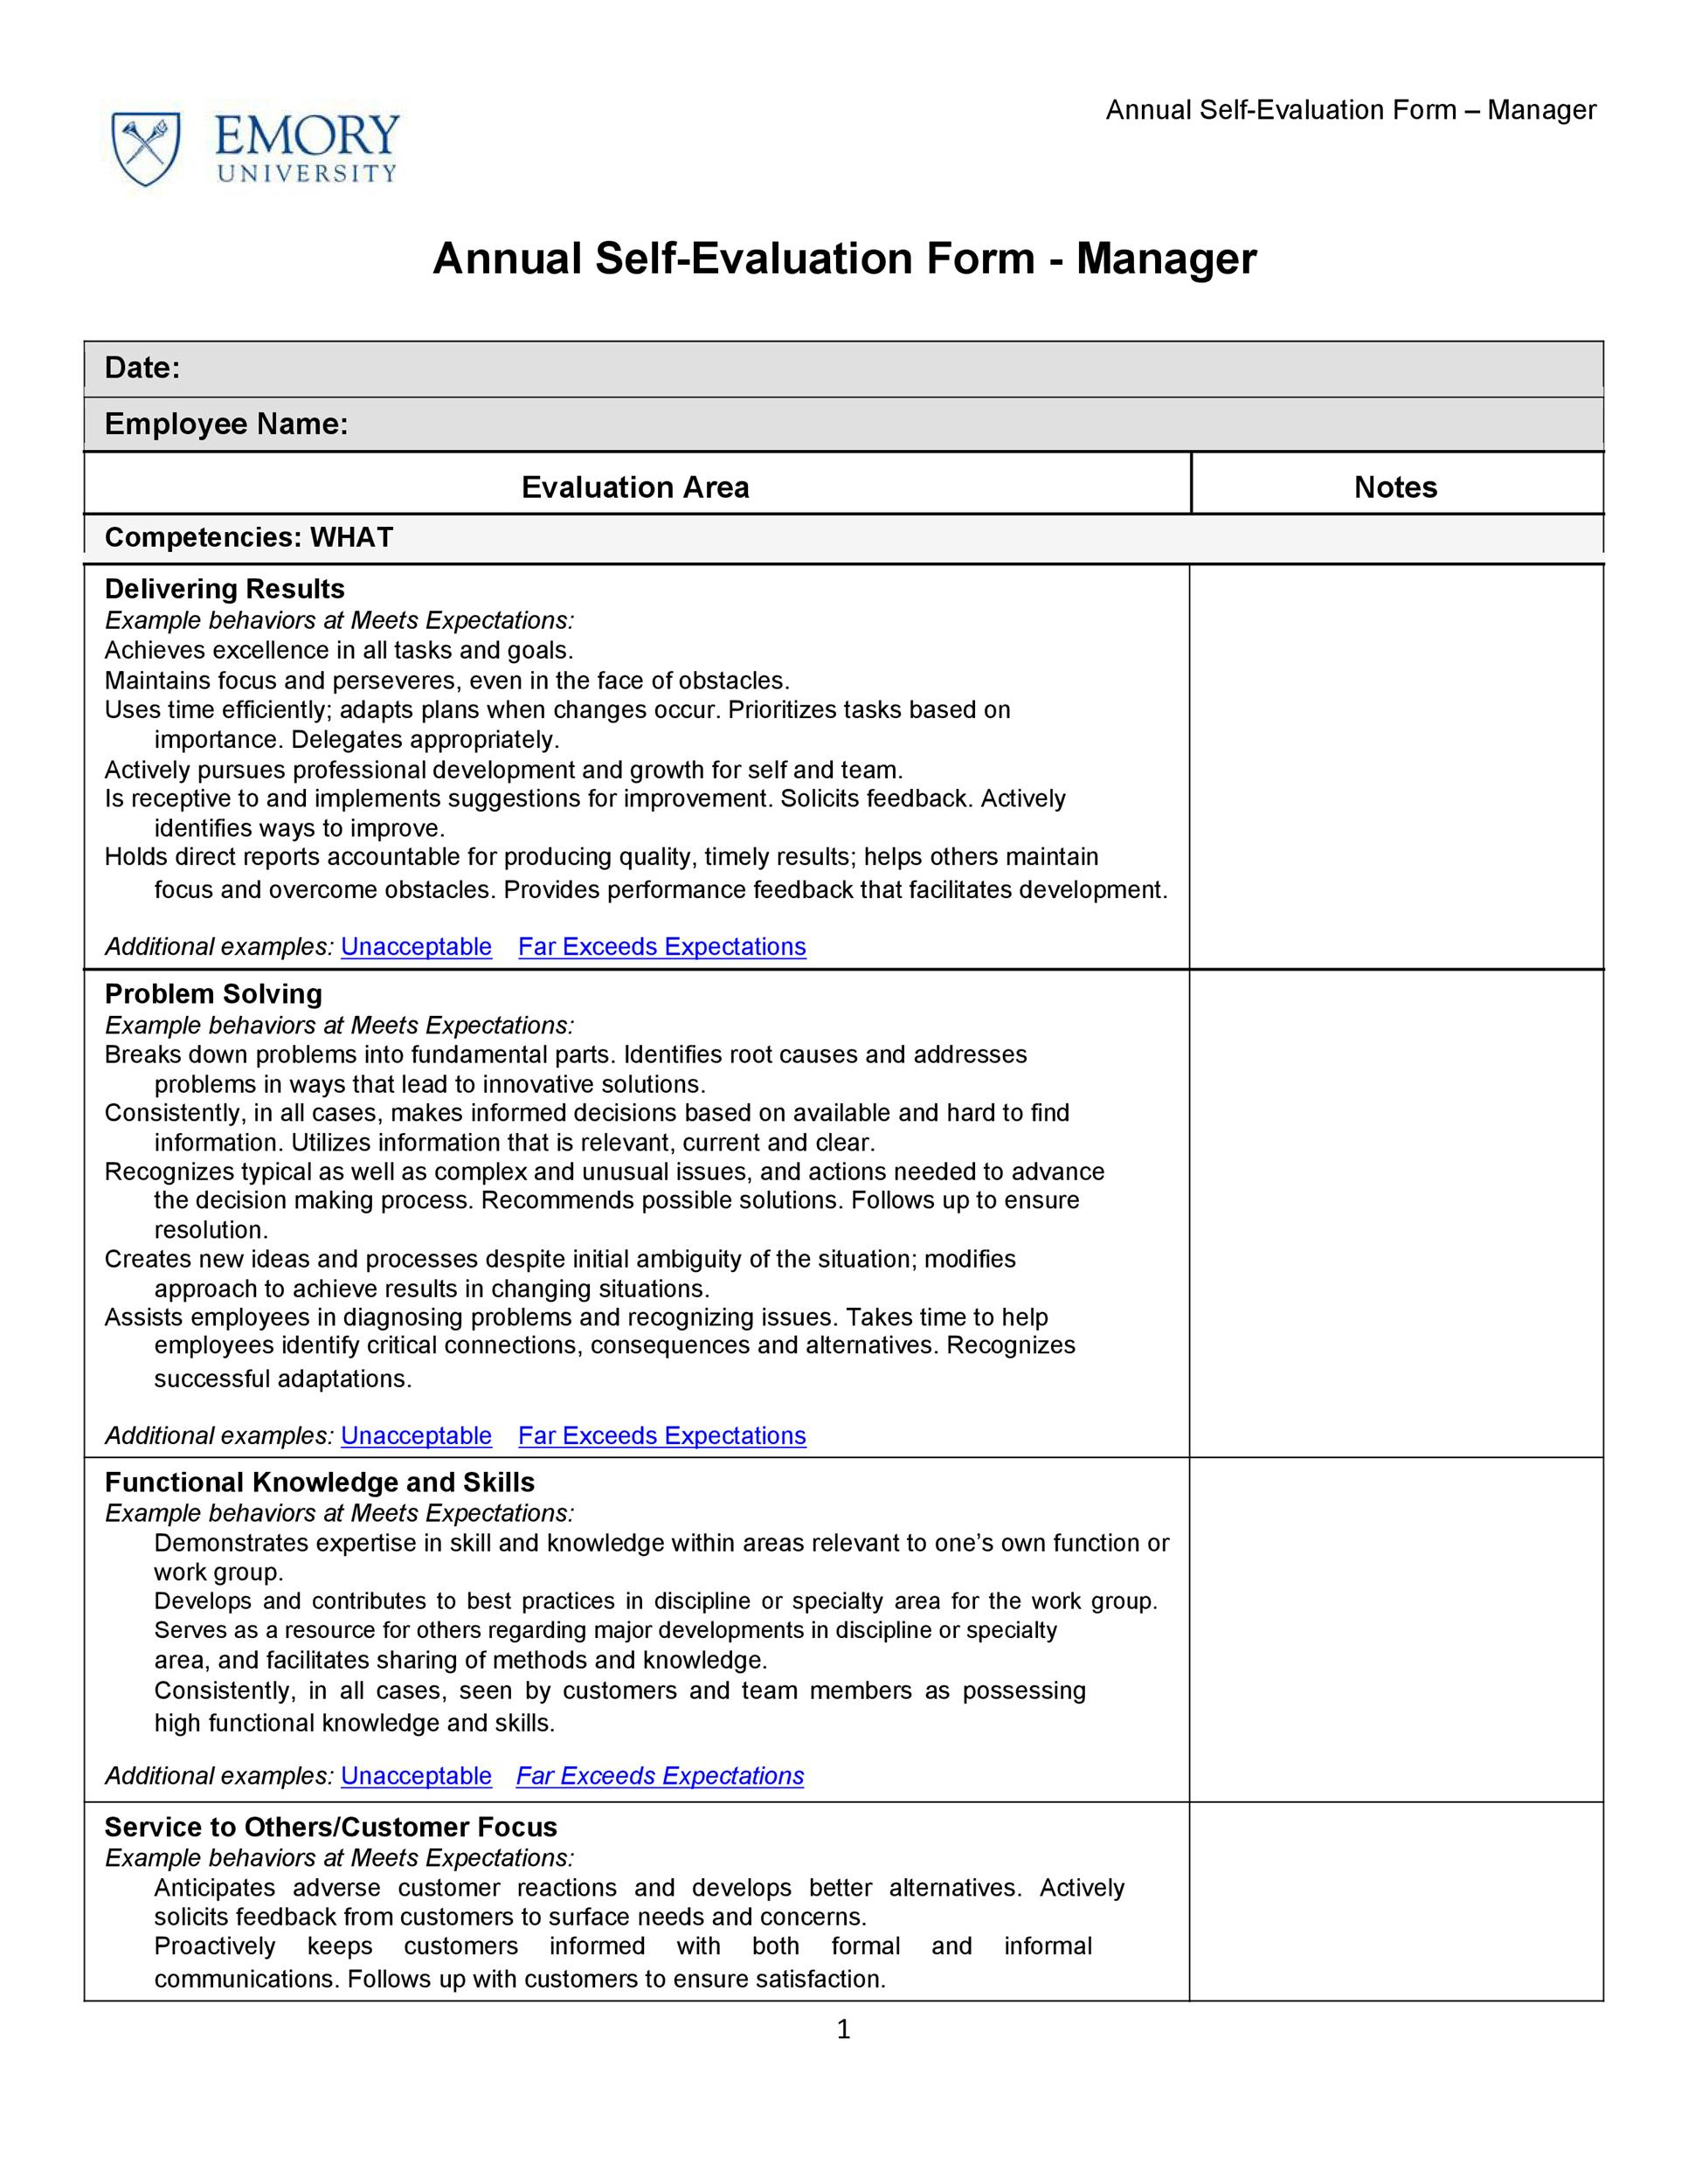 50 Self Evaluation Examples Forms Questions ᐅ Template Lab